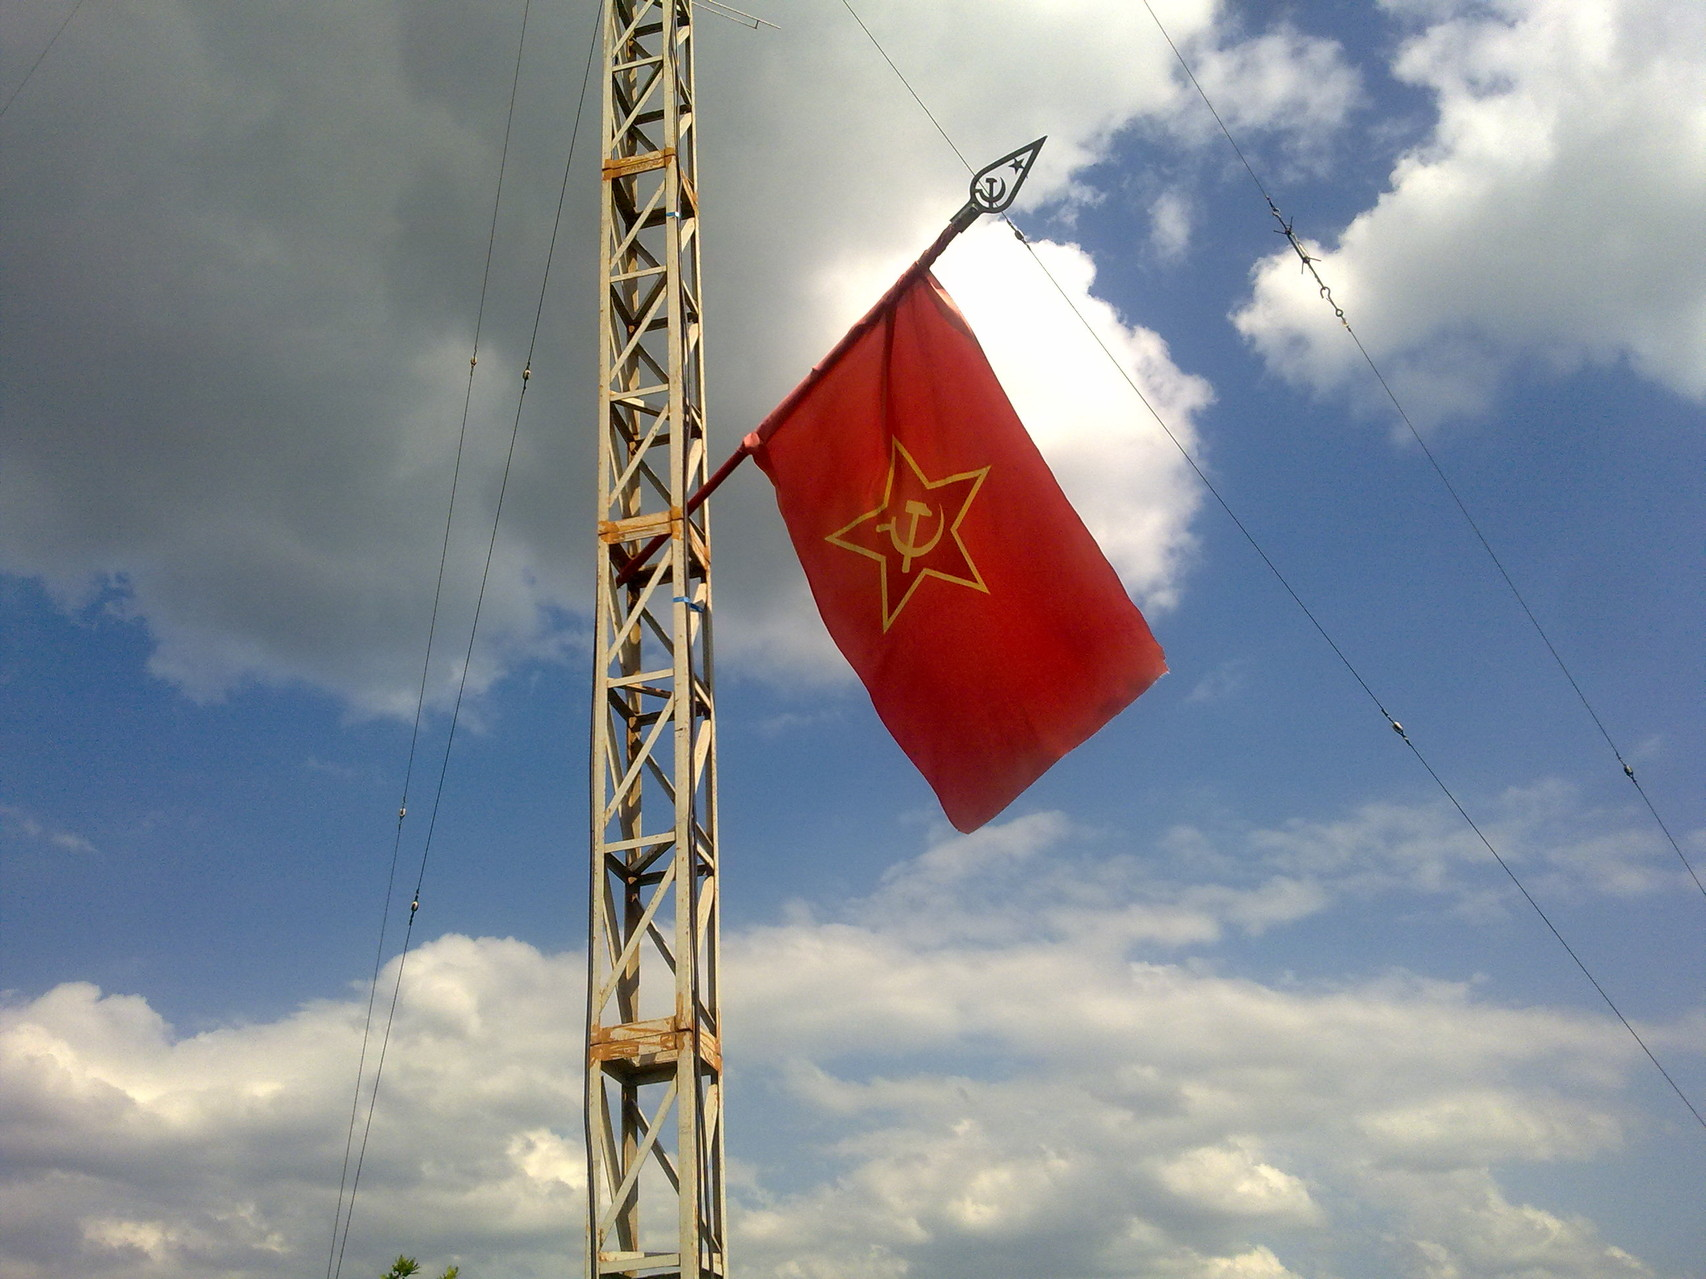 The Victory Day and Popovs Radio Day in RY6Y QTH